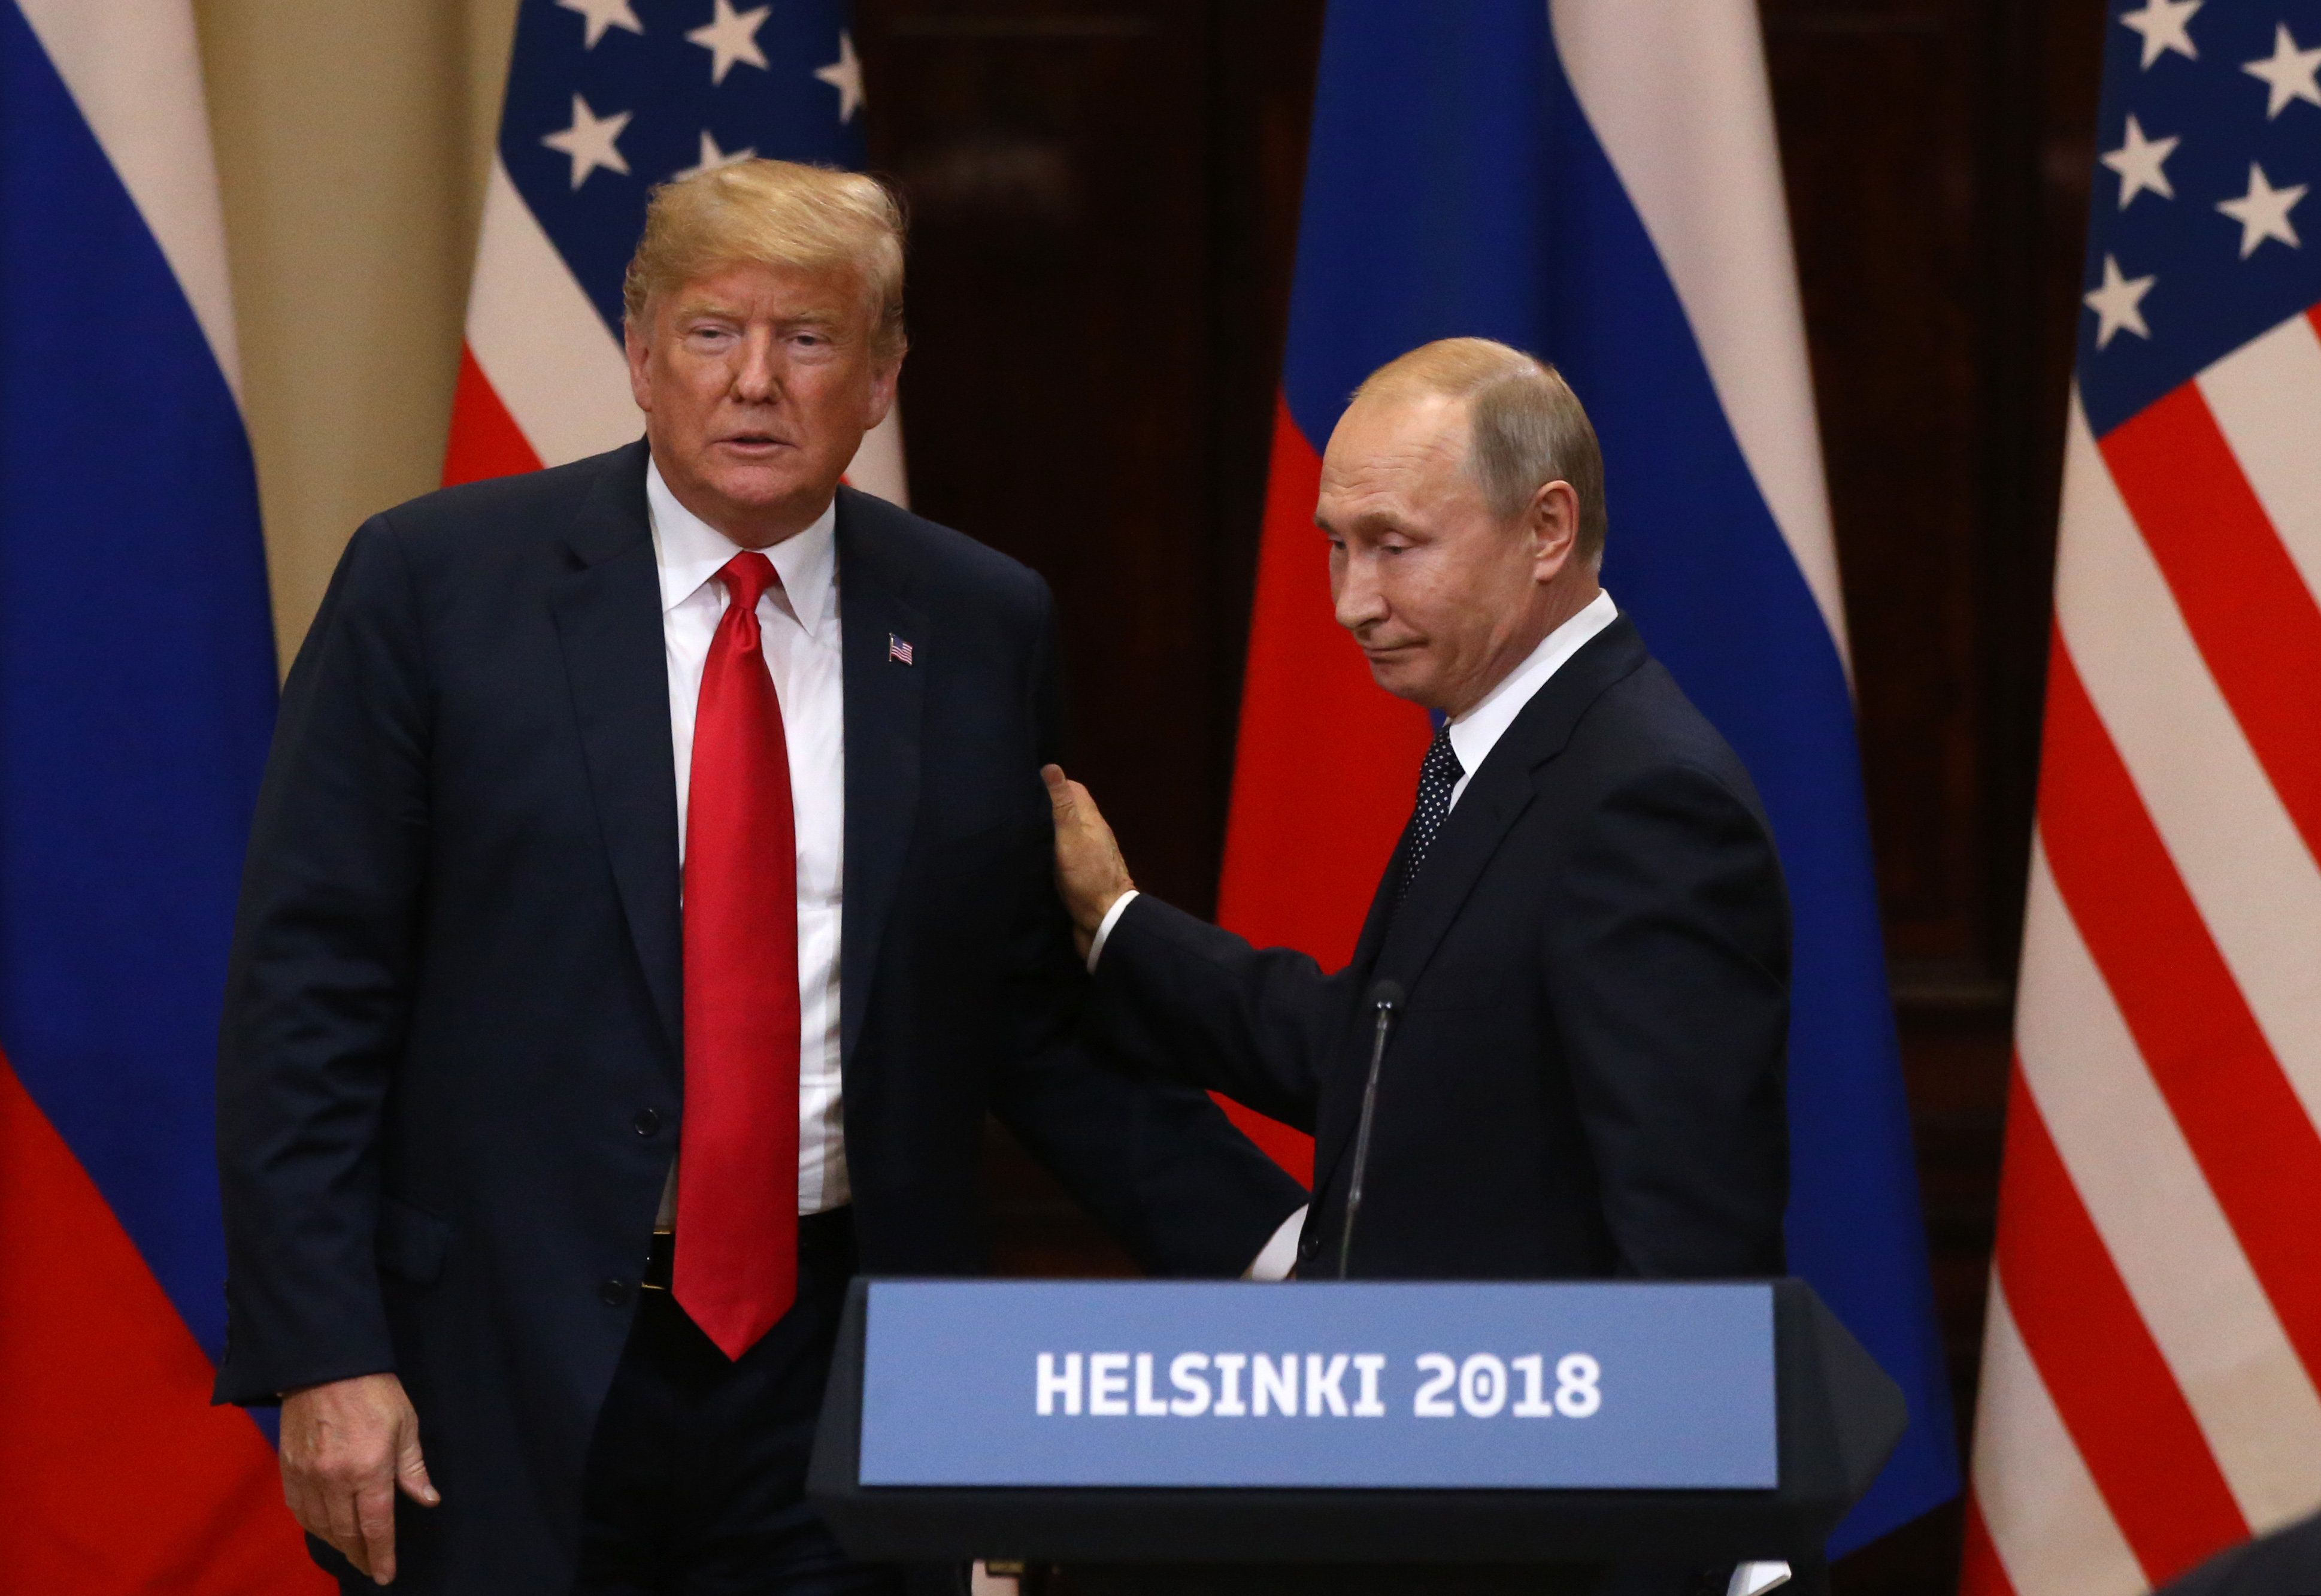 HELSINKI, FINLAND - JULY 16:  (RUSSIA-OUT) U.S. President Donald Trump (L) and Russian President Vladimir Putin attend a joint press conference after their summit on July 16, 2018 in Helsinki, Finland. The two leaders met one-on-one and discussed a range of issues including Russian meddling in the 2016 U.S election. (Photo by Mikhail Svetlov/Getty Images)